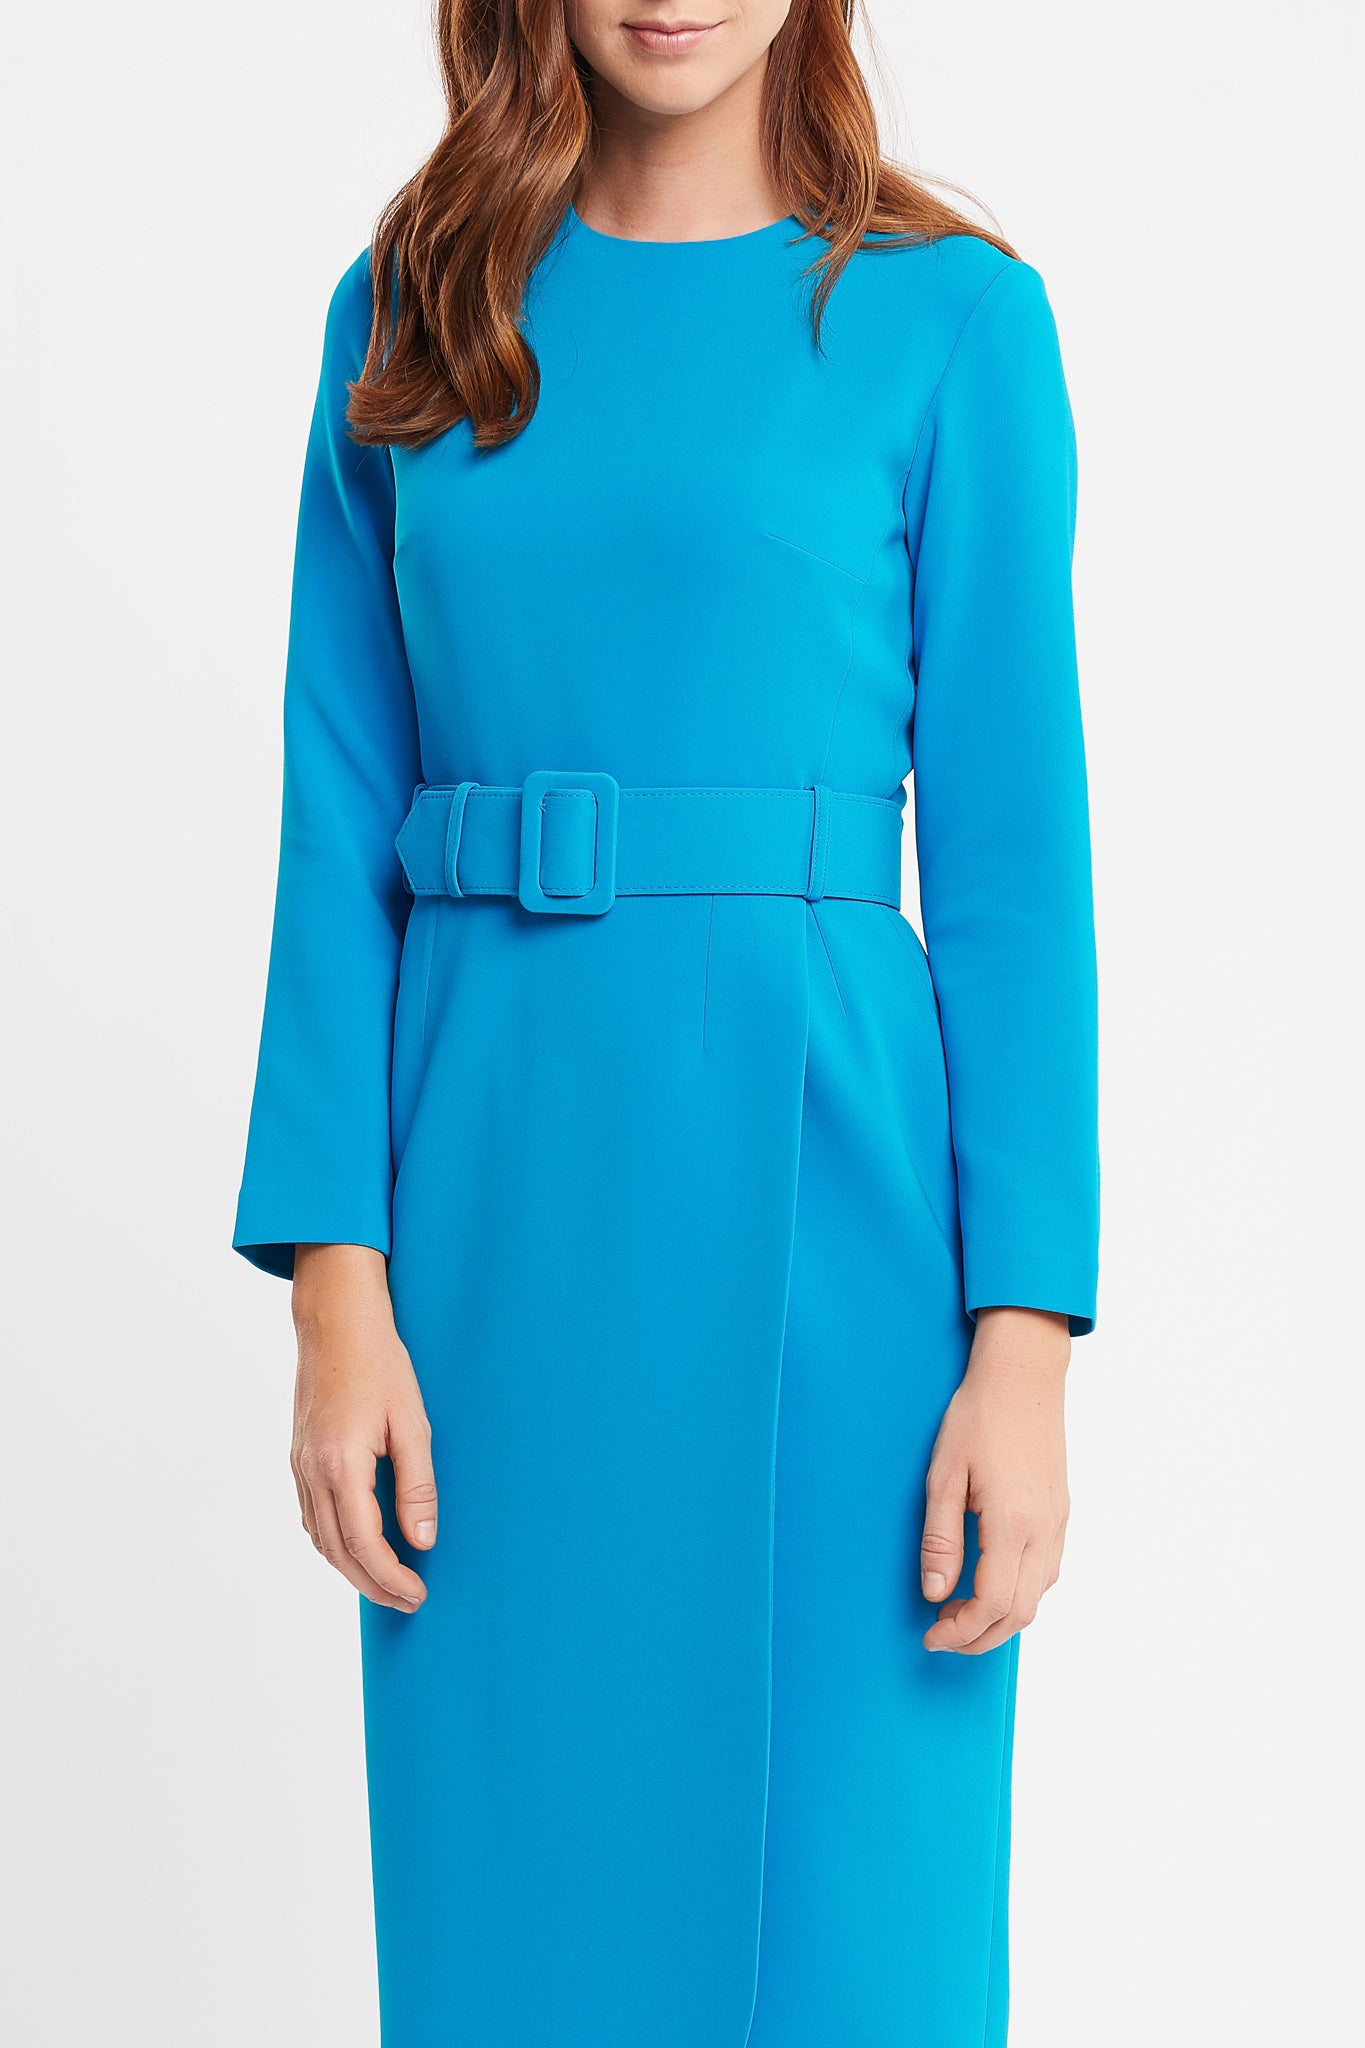 Selena Long Sleeve Sheath Turquoise Work Dress